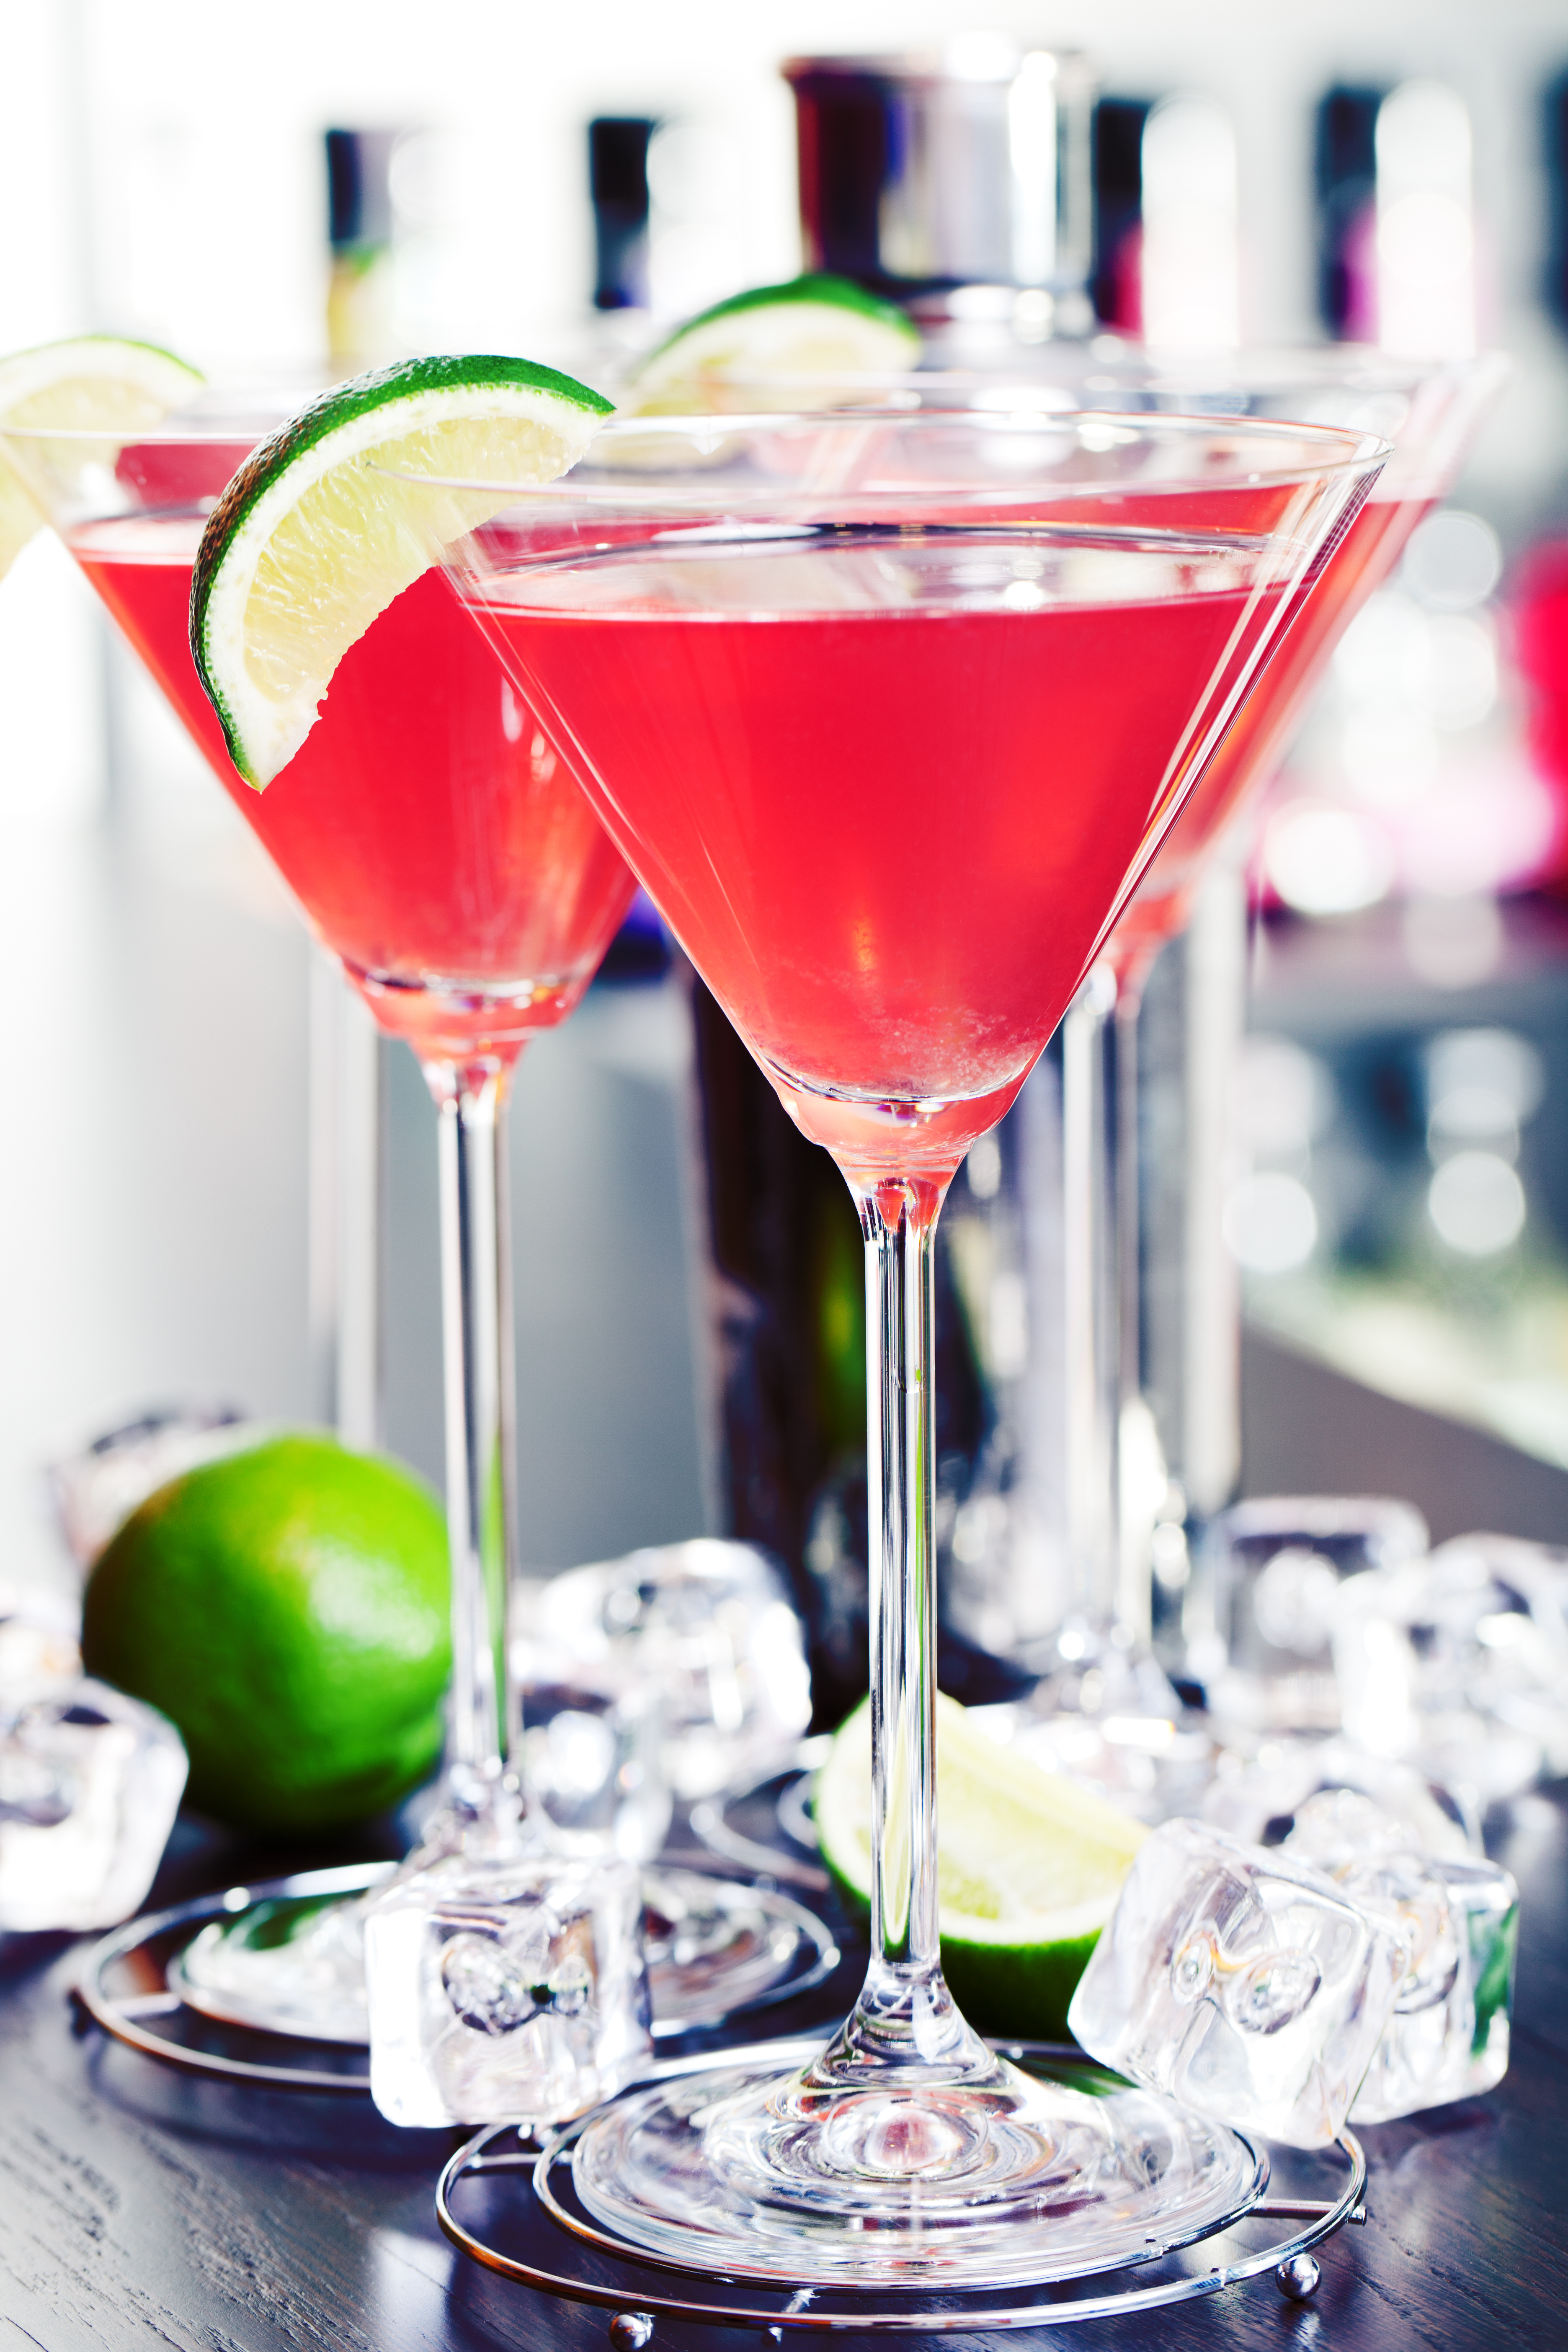 10 Simply Delicious Cocktail Party Recipes - avenue15.co.uk